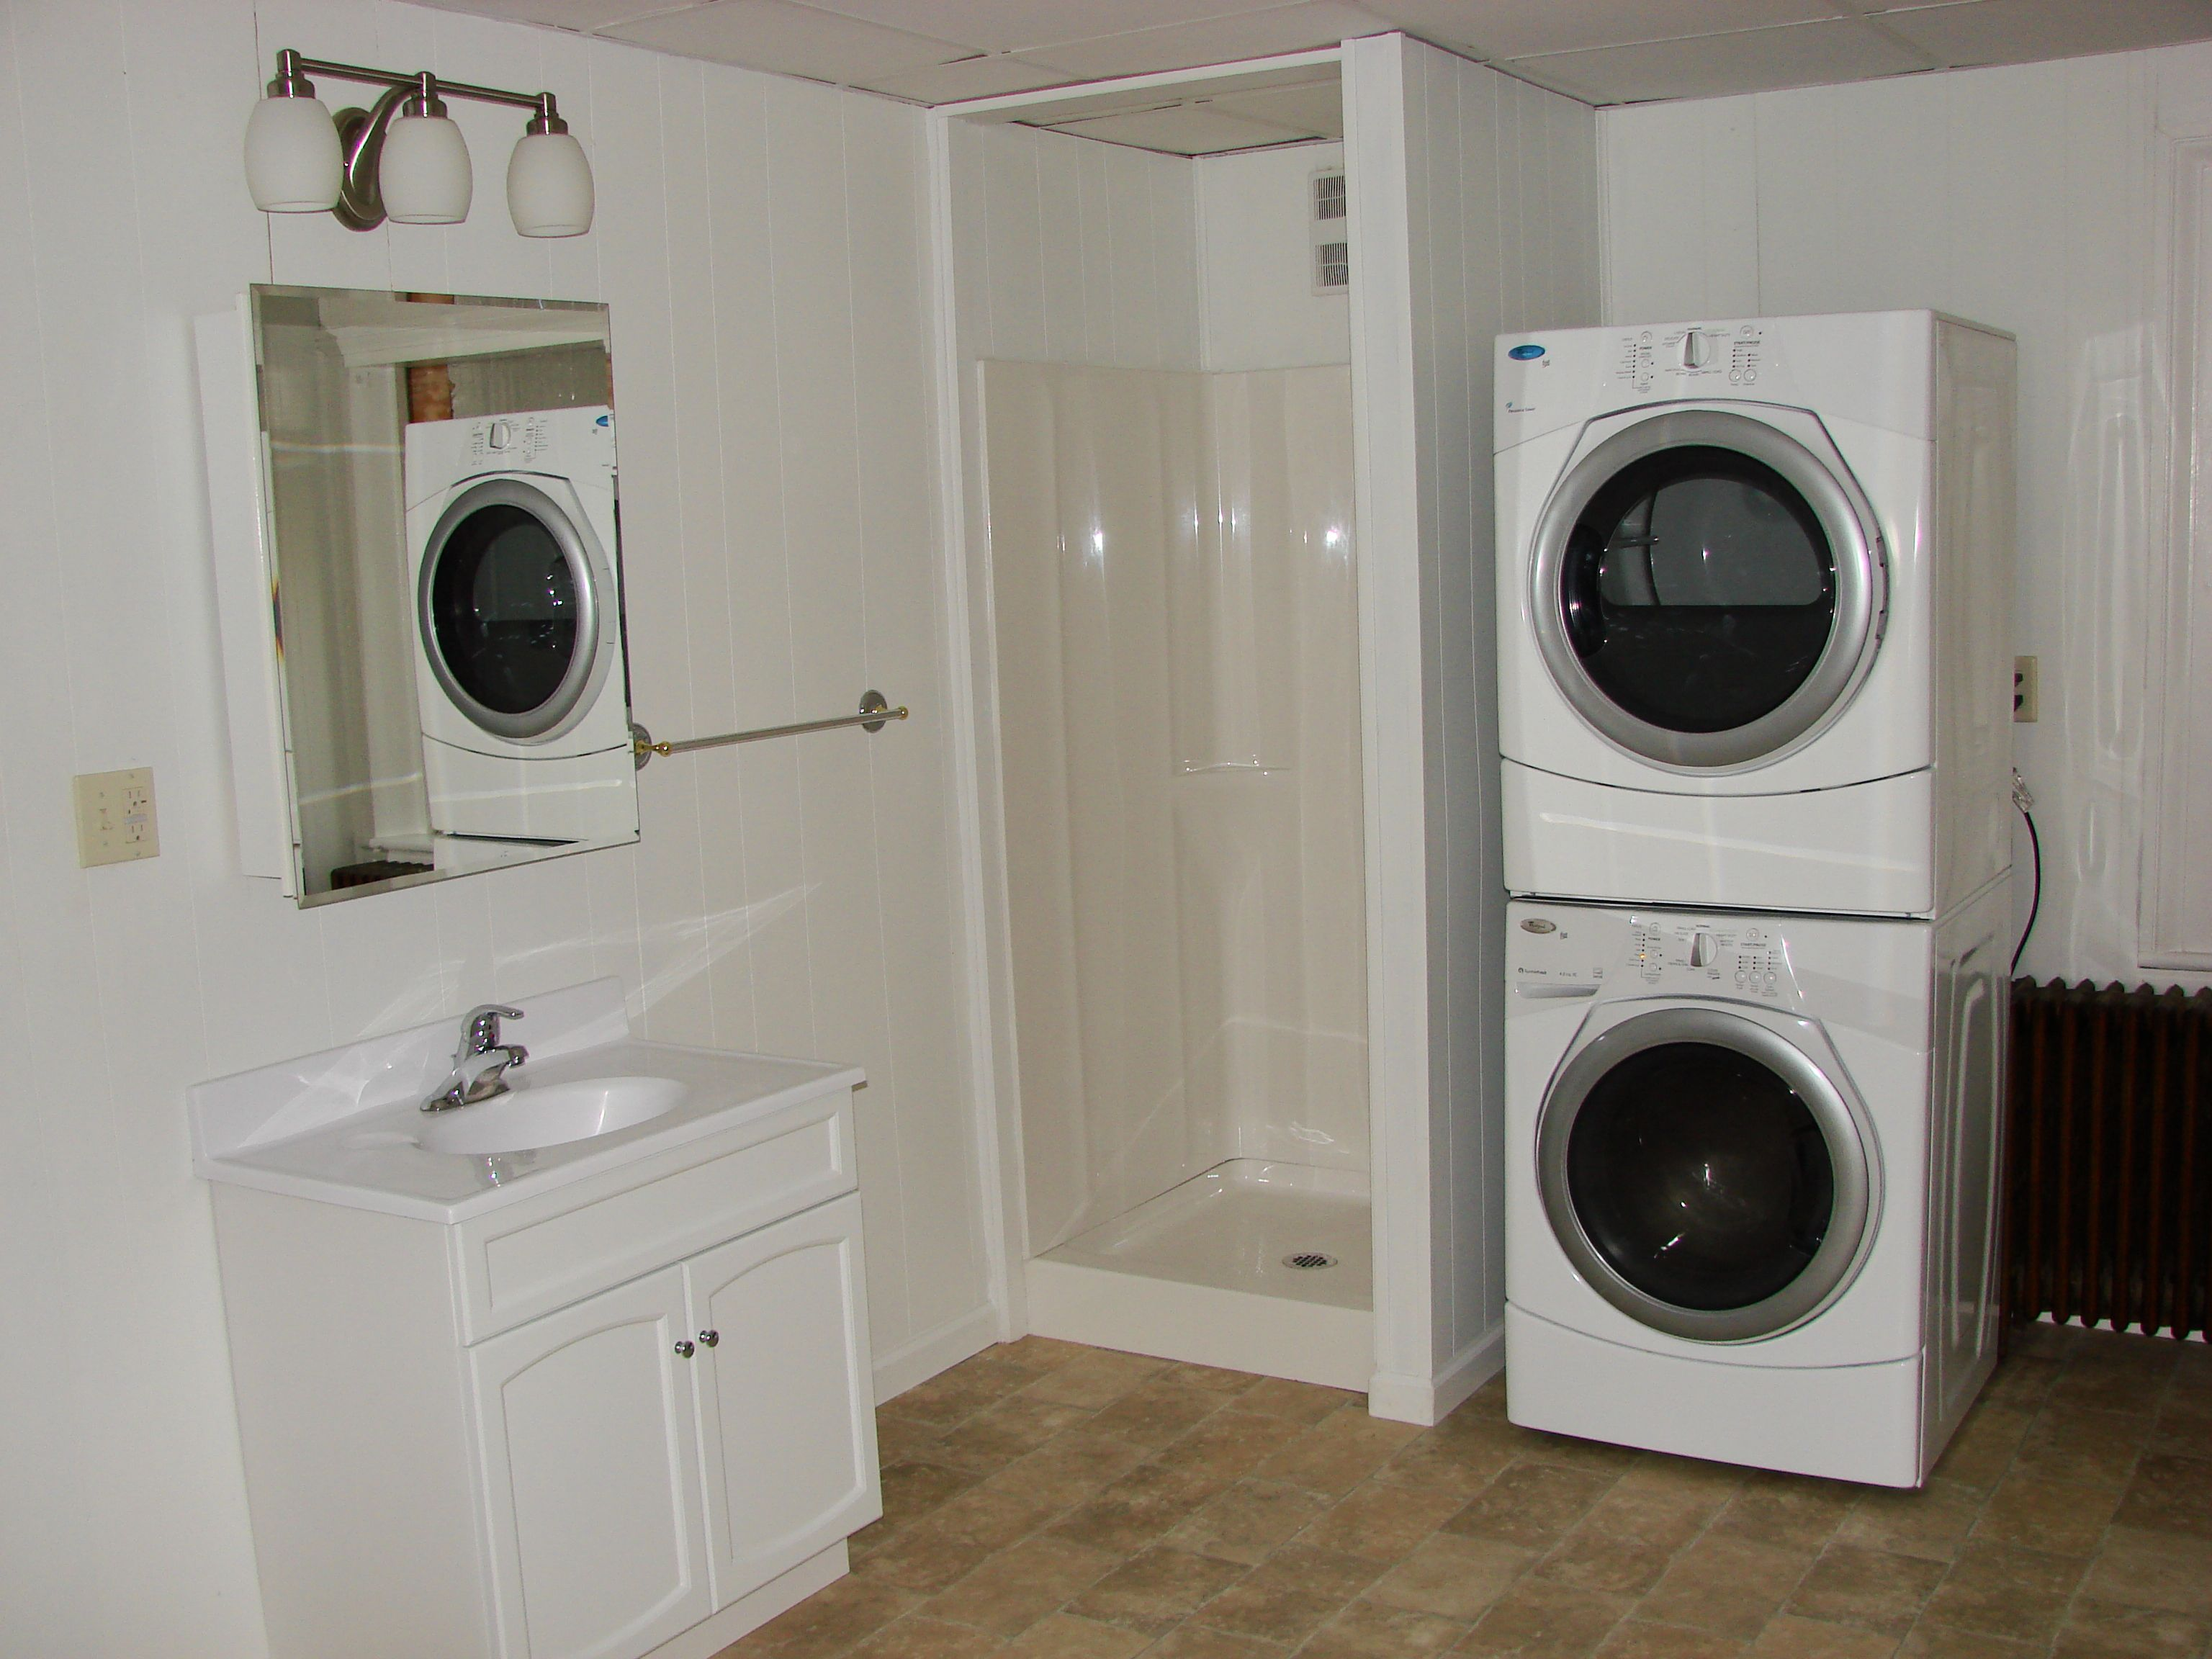 Cool white wash machine and dry machine on the side of for Small bathroom designs with washing machine